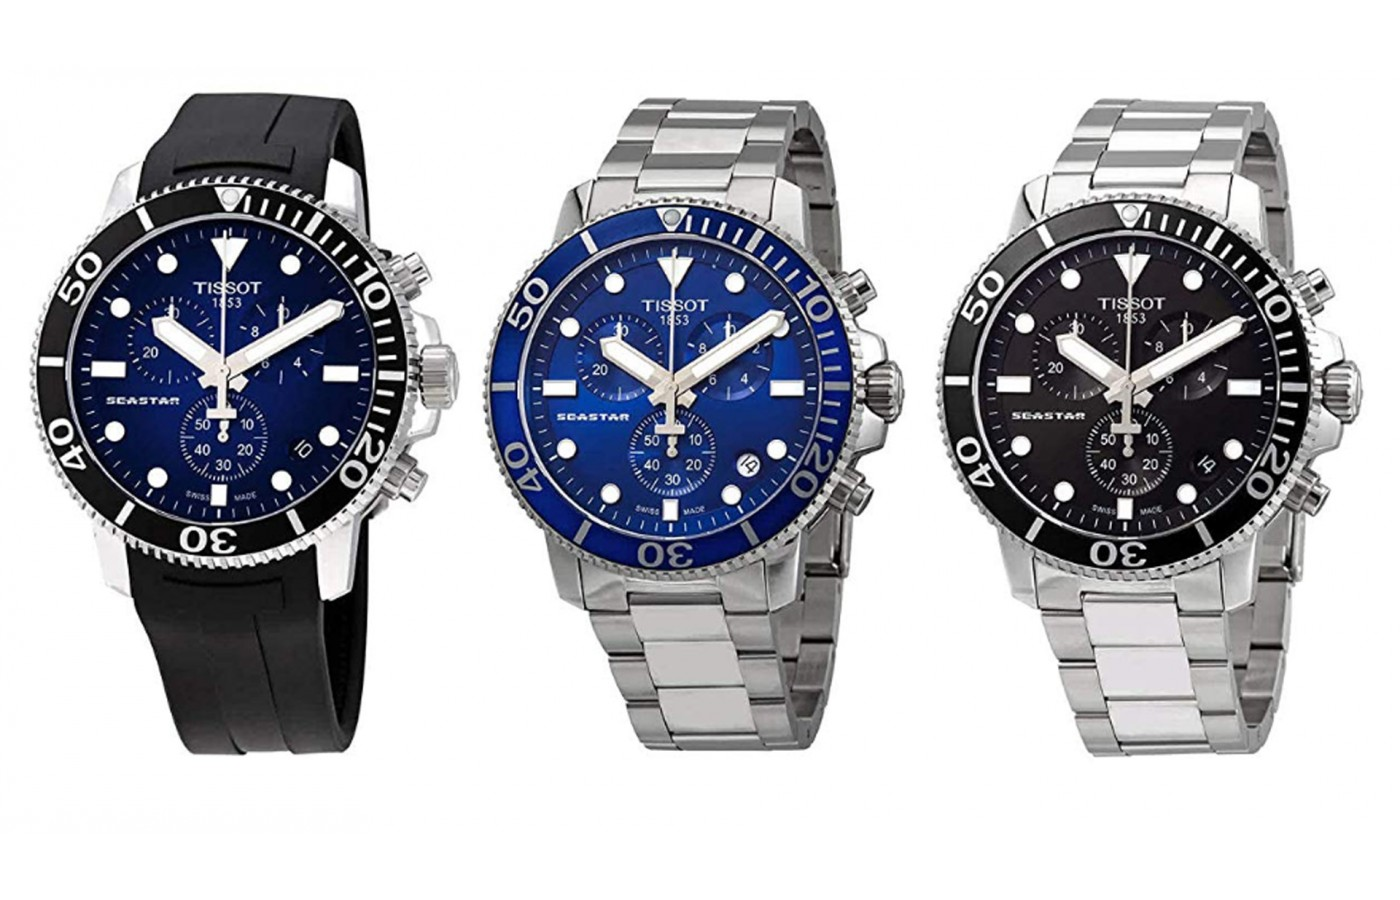 Just 3 of the offered appearances of the Tissot Seastar 1000, which holds a lot of appearance options.